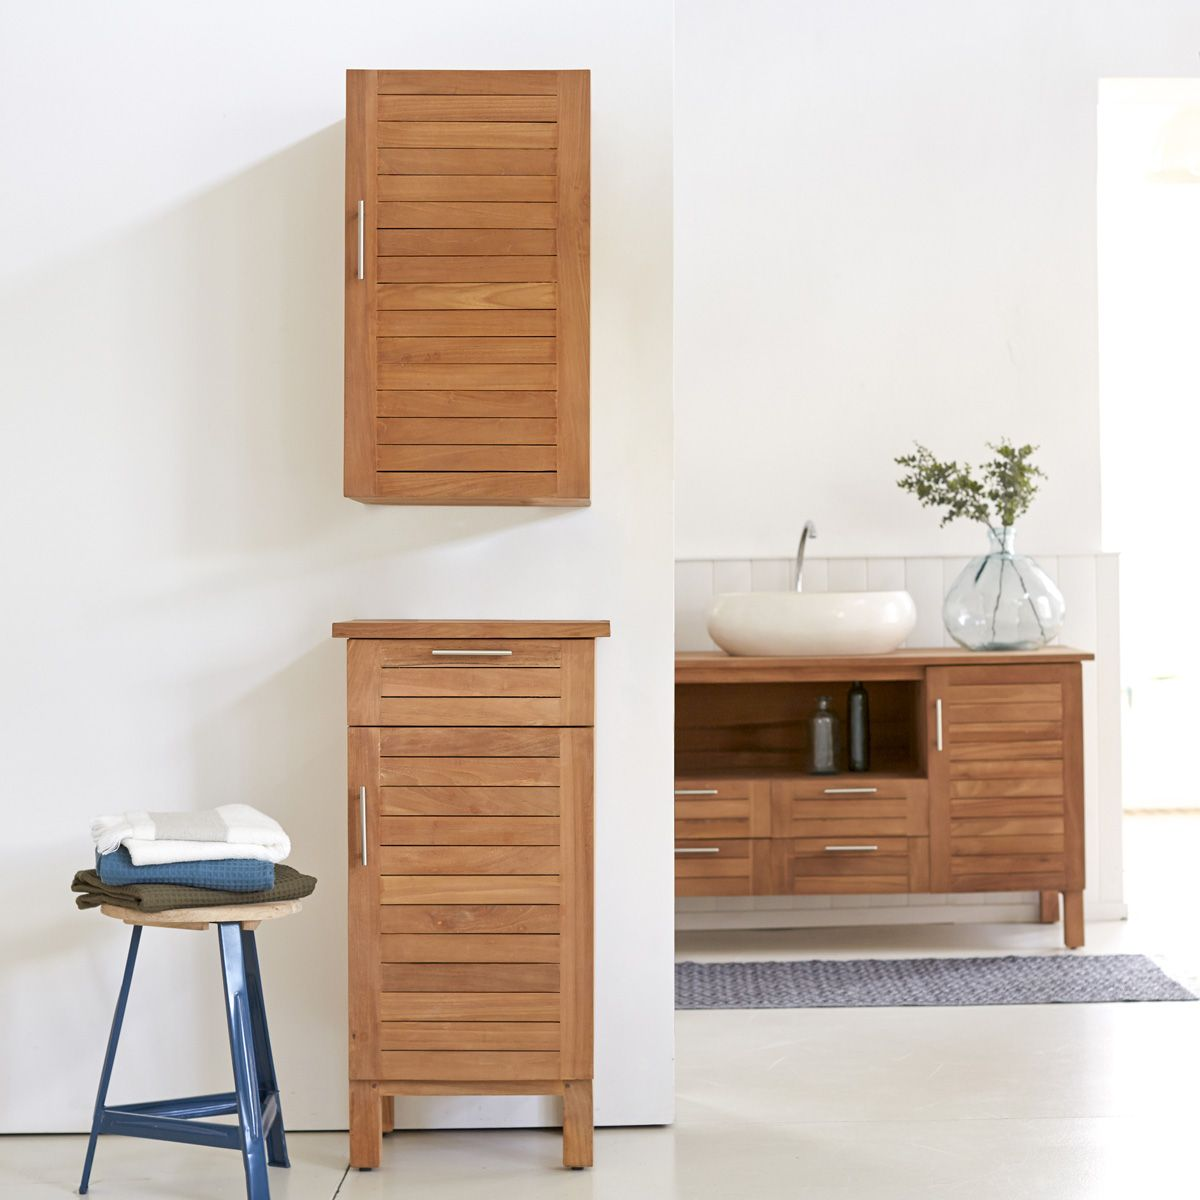 Modular Teak Bathroom Set Bathroom Storage Column Range